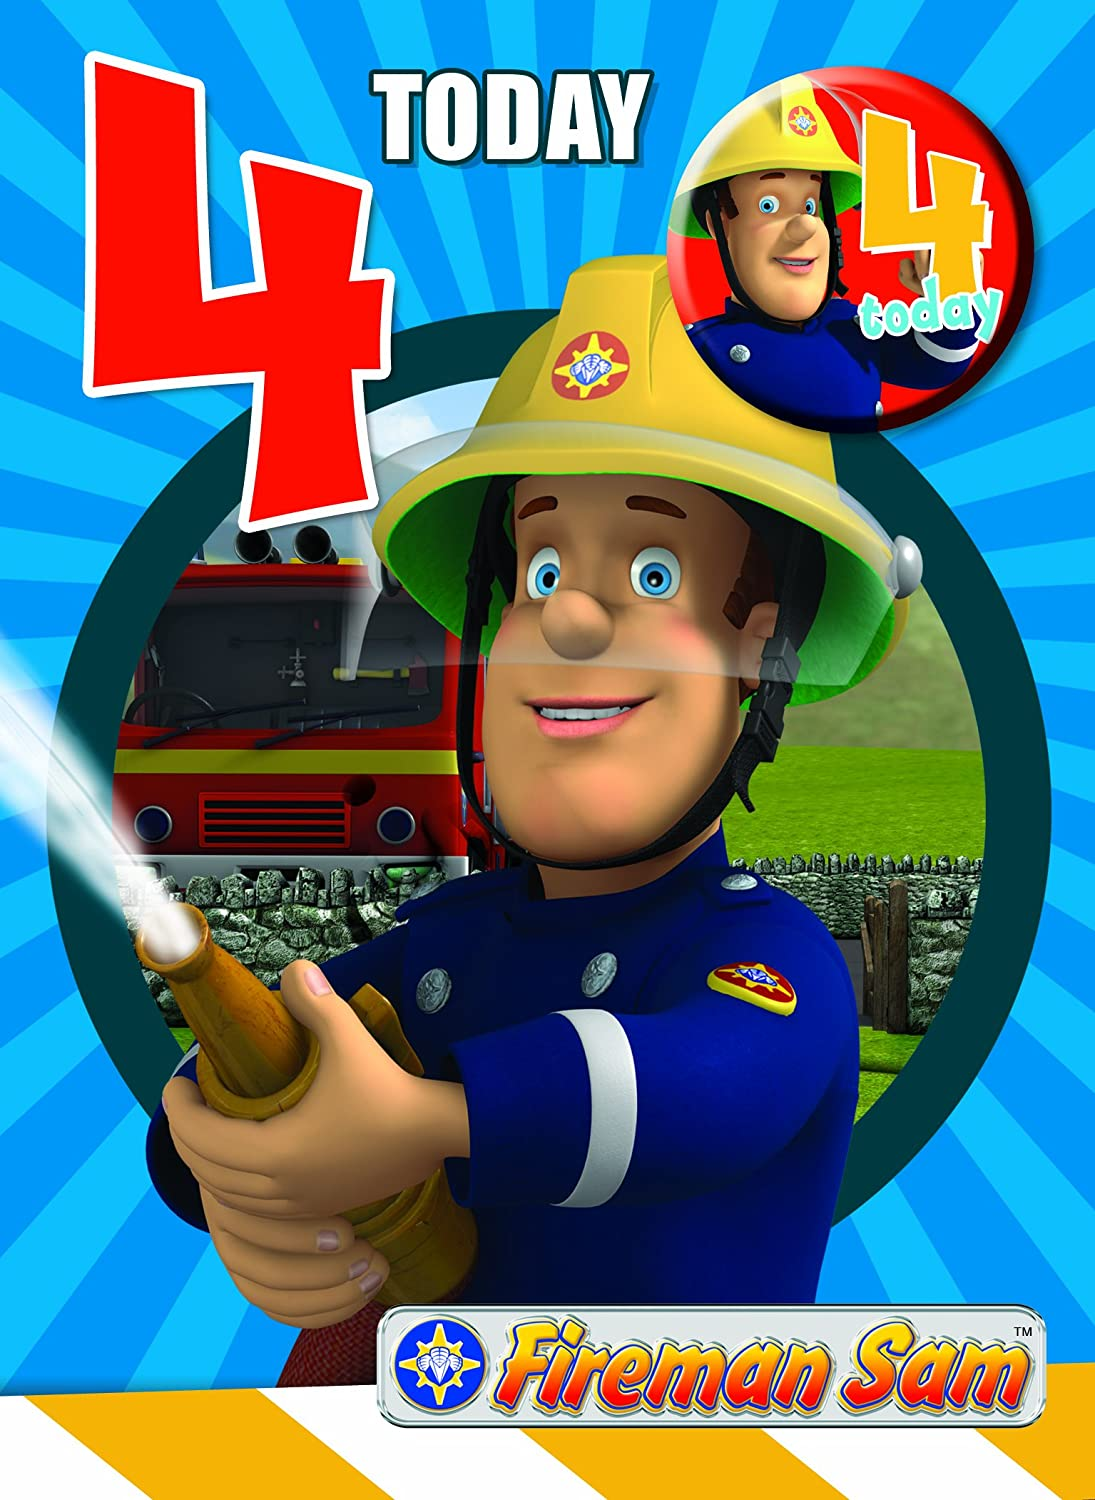 Fireman Sam FS004 Age 4 Birthday Card Amazoncouk Office Products – Fireman Sam Birthday Cards